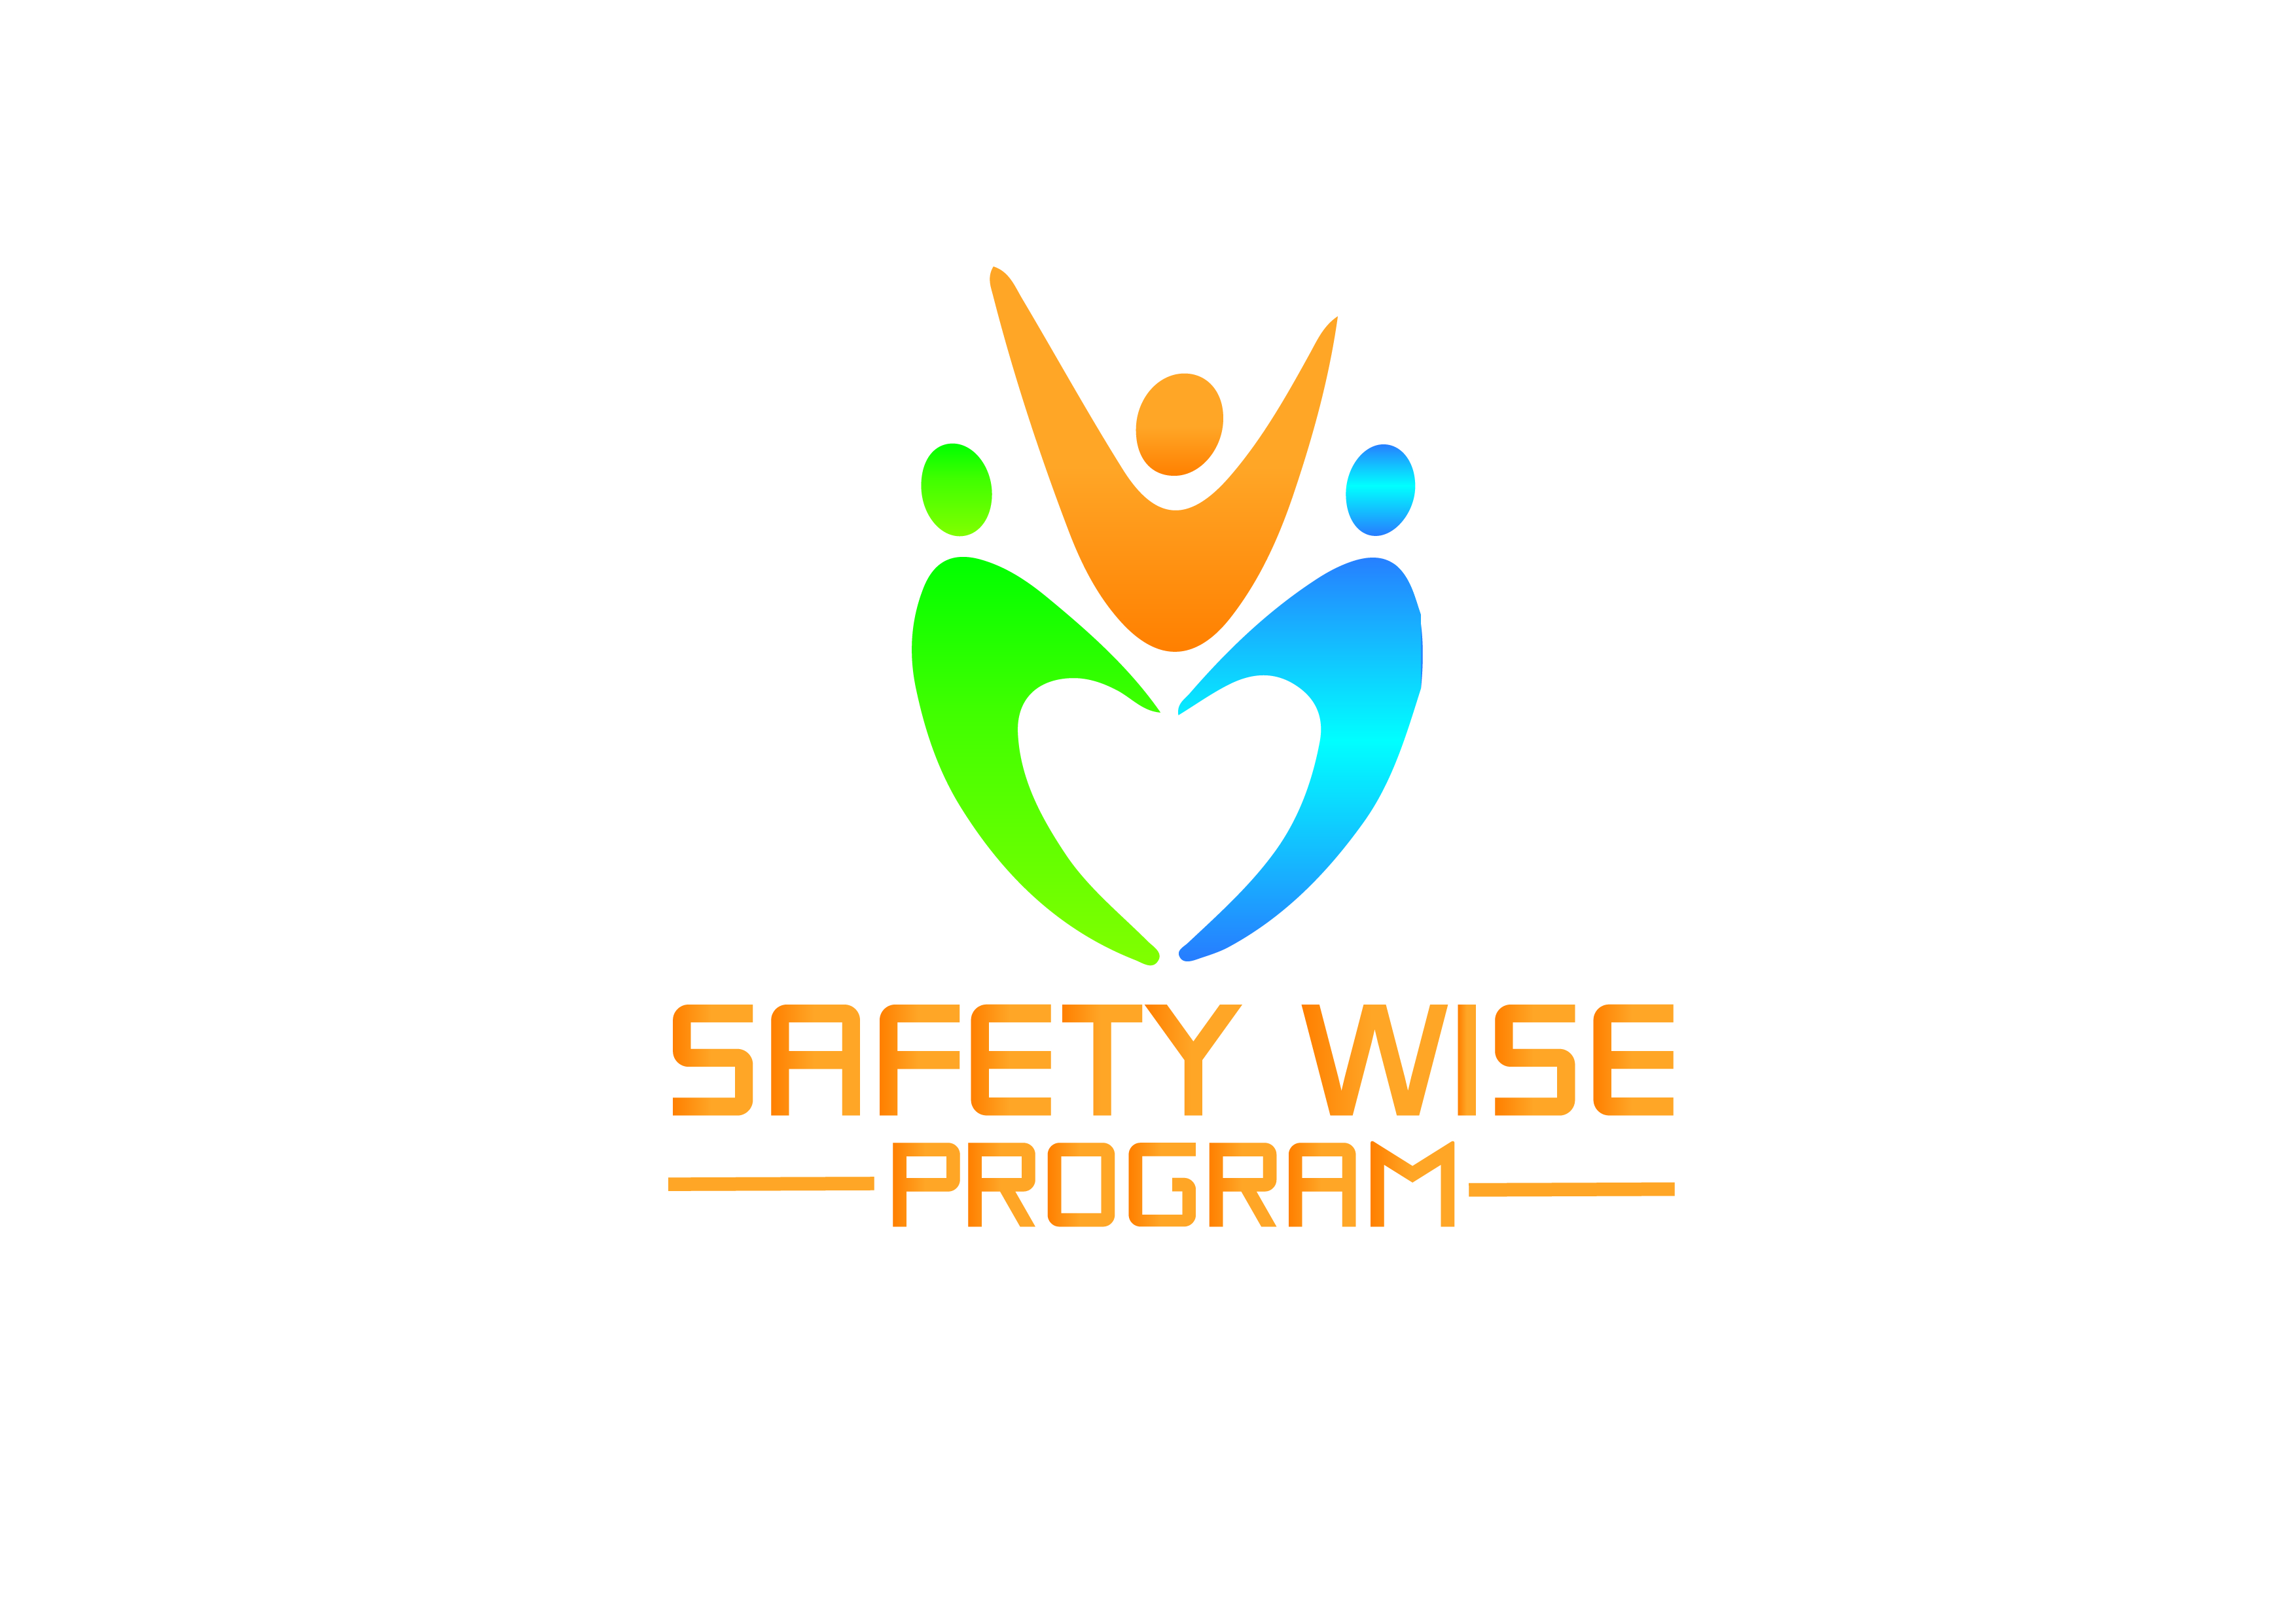 Logo Design by Anum Aamir - Entry No. 89 in the Logo Design Contest New Logo Design for Safety Wise Program.